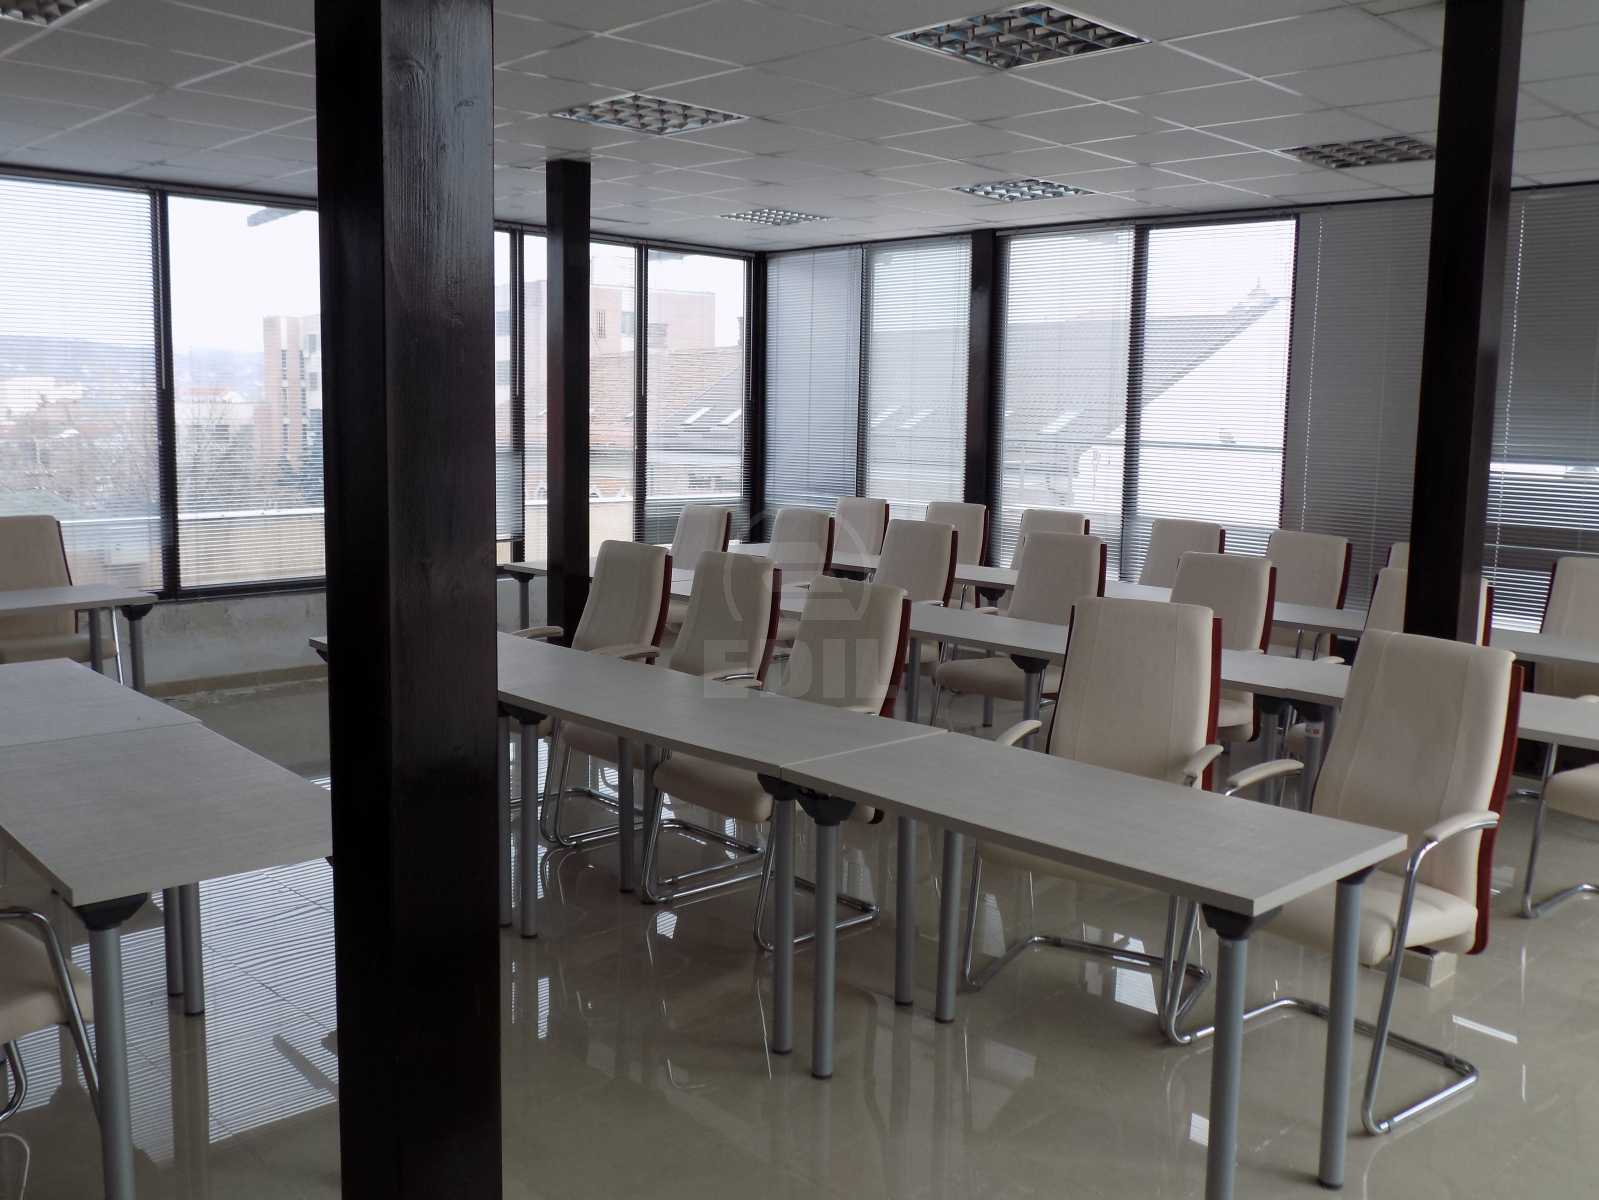 Commercial space for rent 11 rooms, SCCJ297293-9